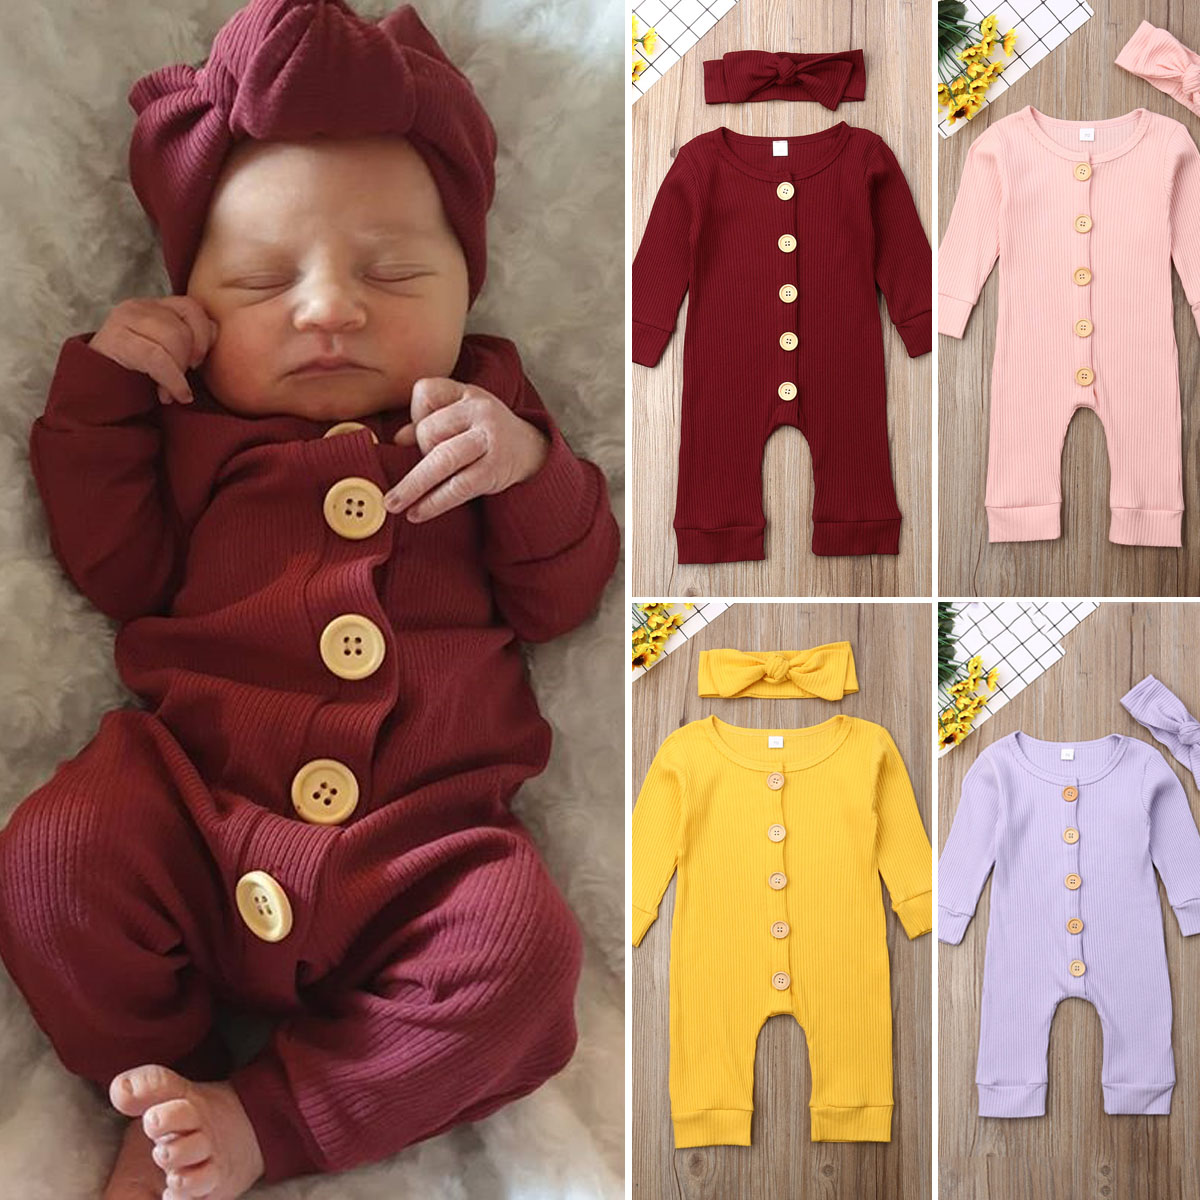 H6d05708378e94af6b4c25a347582a8b0R Spring Fall Newborn Baby Girl Boy Clothes Long Sleeve Knitted Romper + Headband Jumpsuit 2PCS Outfit 0-24M